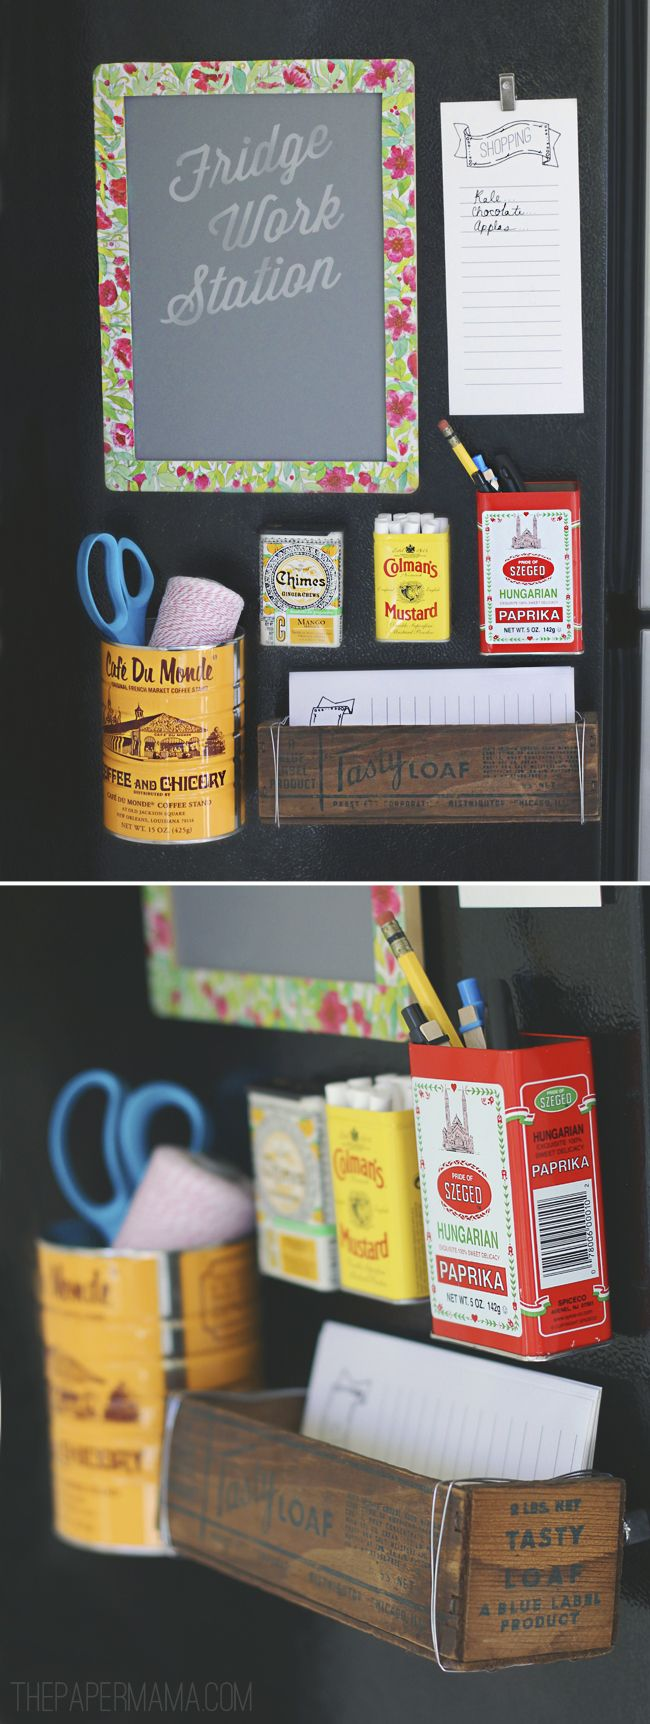 How cute is this DIY fridge work station from Style Spotter @Chelsey Boatwright Photography The Paper Mama? Find out how she made it here: http://www.bhg.com/blogs/better-homes-and-gardens-style-blog/2012/09/06/diy-ify-fridge-work-station/?socsrc=bhgpin090612DIYkitchenworkstation